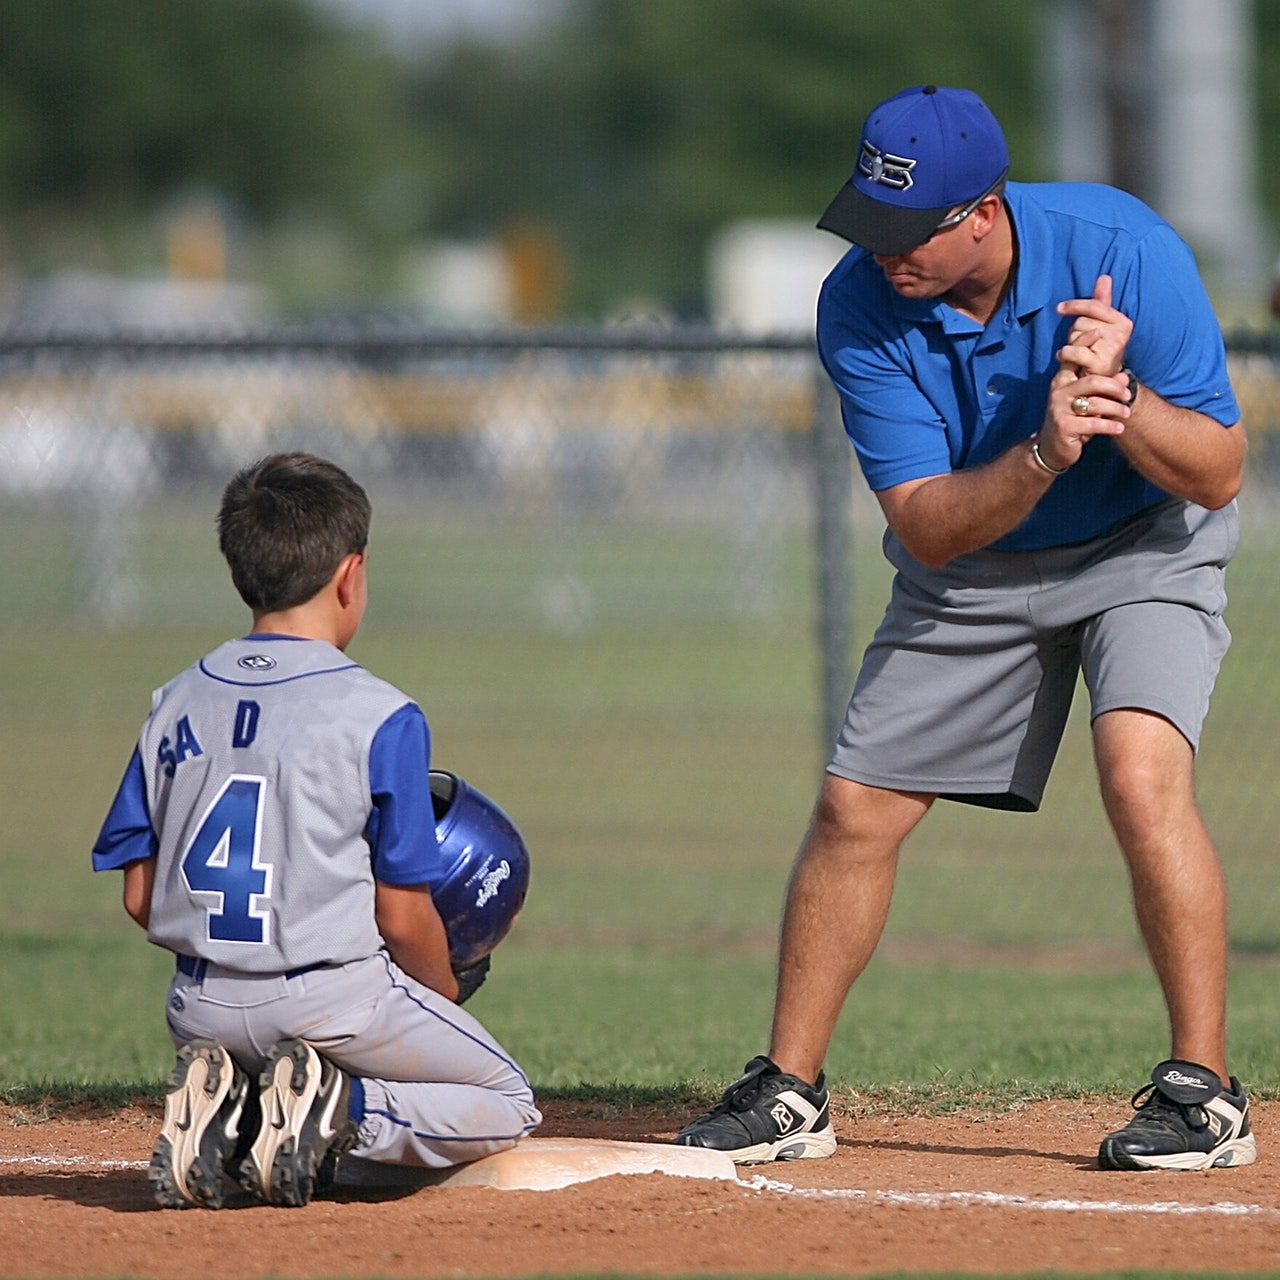 coach with child during baseball practice